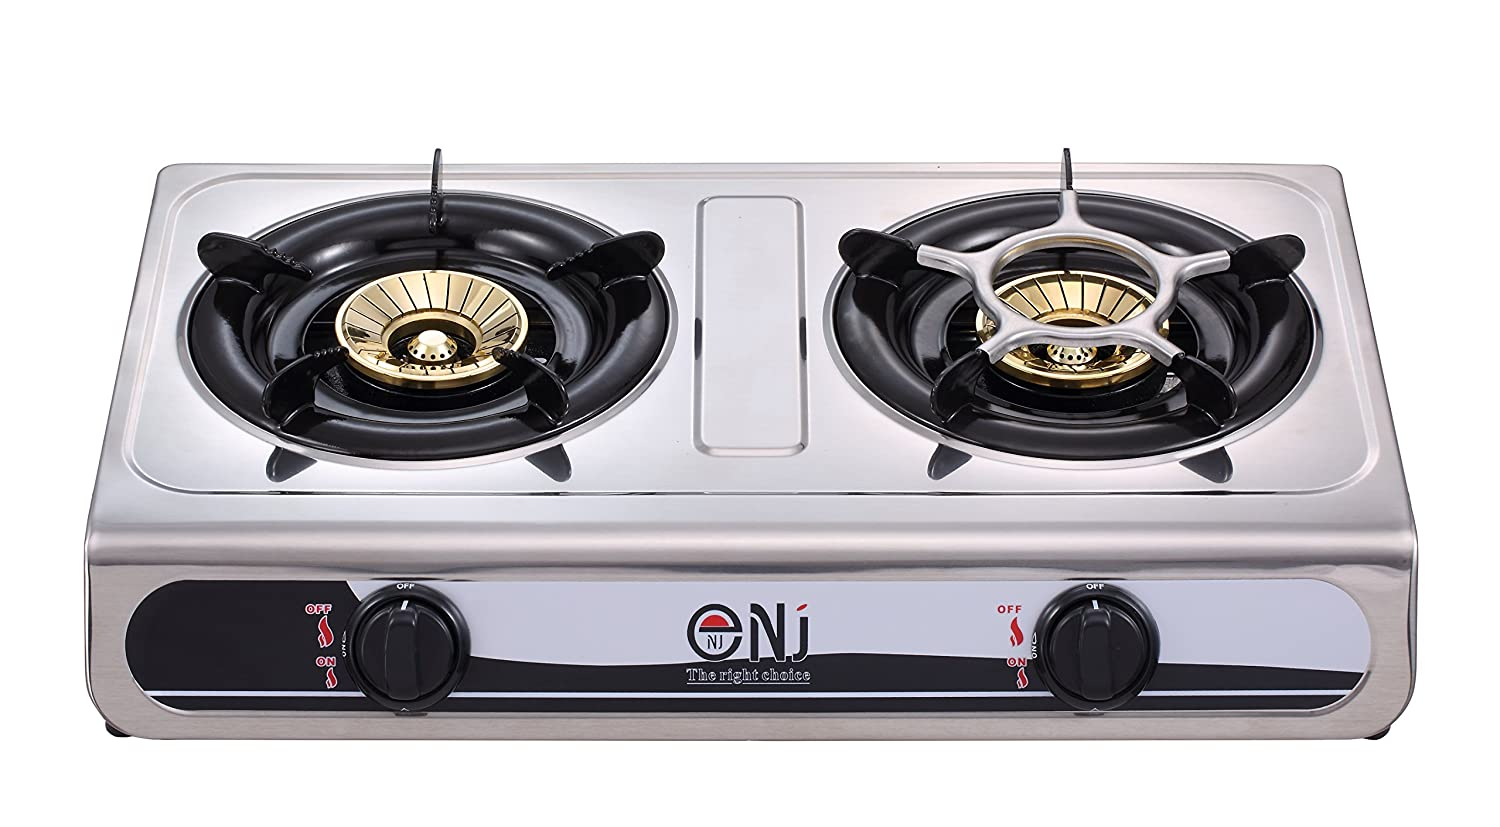 NJ NGB-60 Gas Stove 2 Burner Stainless Steel 60cm 7.6kW Outdoor